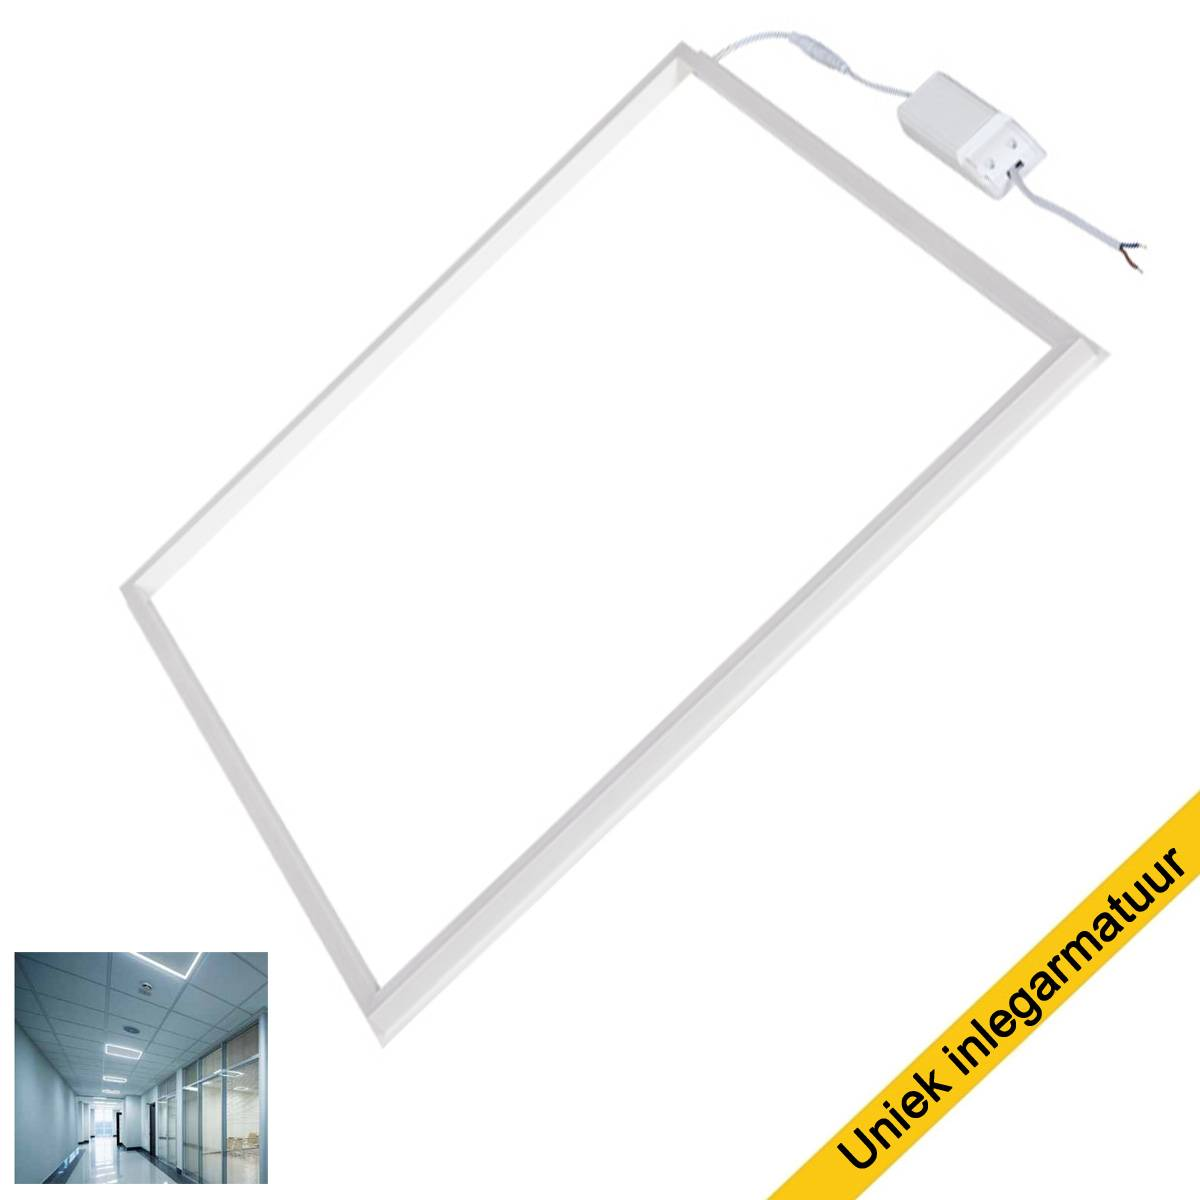 https://www.alle-ledverlichting.nl/_Files_Products/170-img_1-ivar-led-frame-systeemplafond.jpg